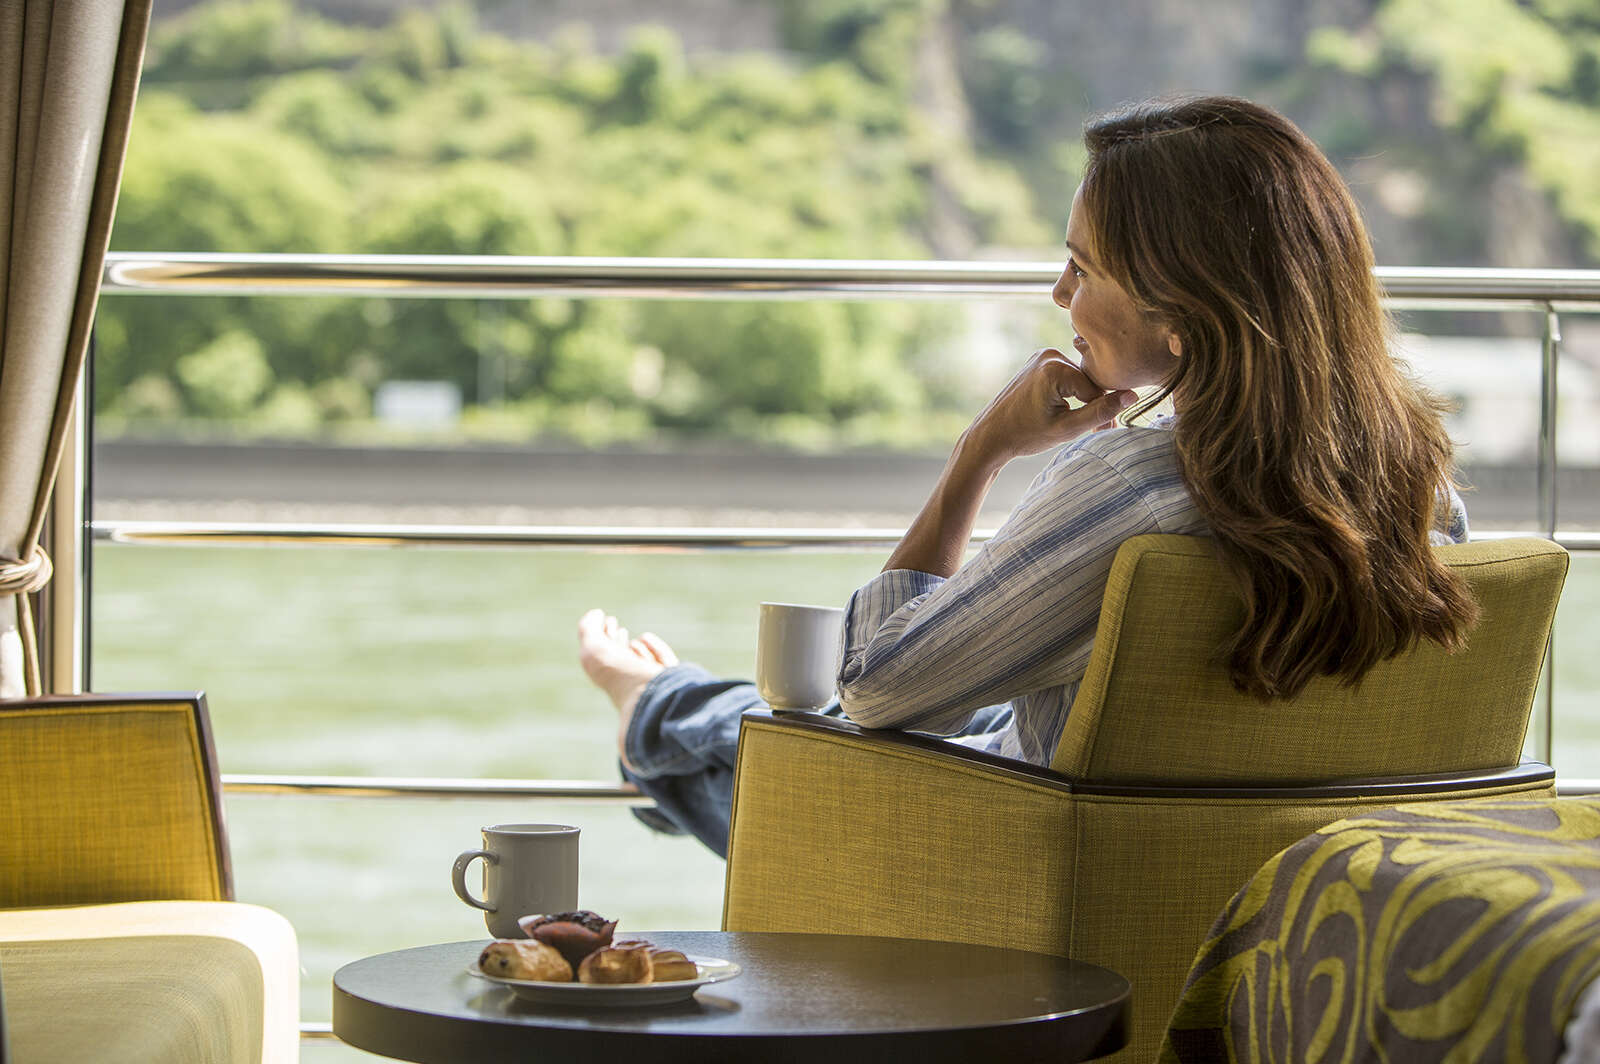 Avalon Waterways - Single supplement waived on the cruise portion of select 2021 Avalon Waterways Europe river cruises.*